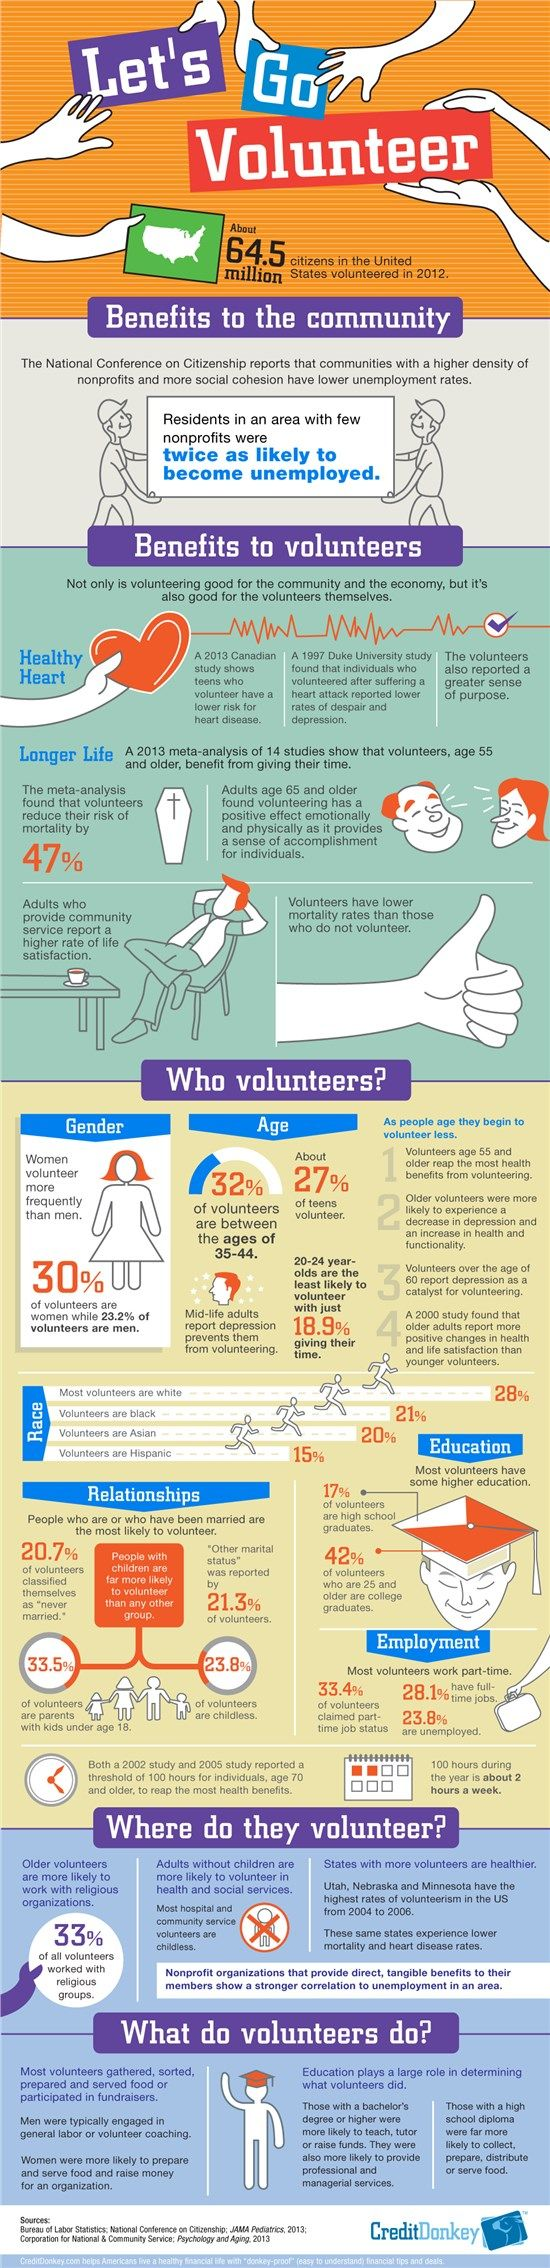 Infographic: Why Volunteering is Good for Your Health, Your Career, and the Community. Volunteers are happier and healthier, with less likelihood of having a number of serious health conditions. © CreditDonkey